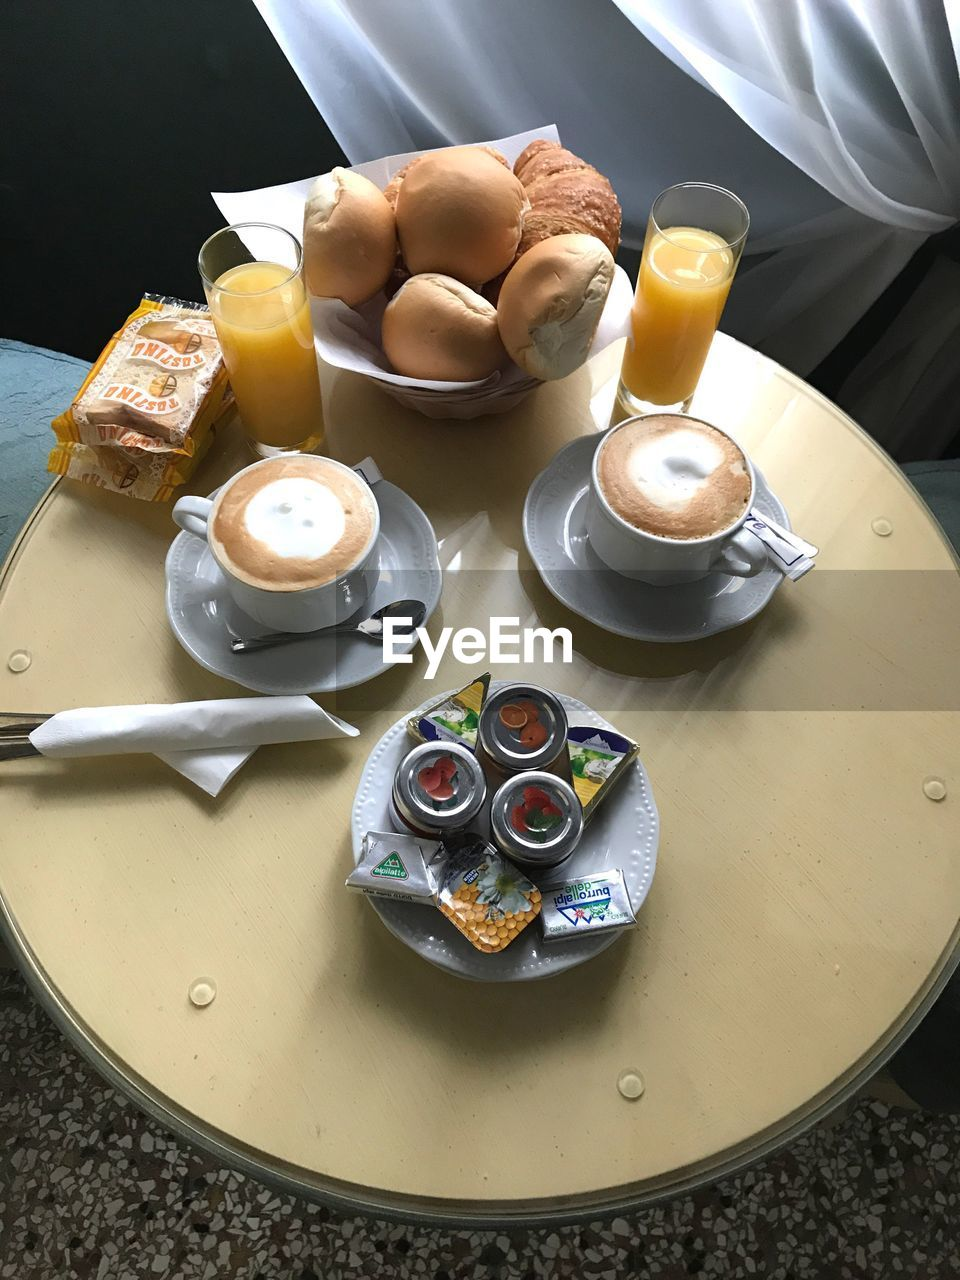 food and drink, food, high angle view, plate, freshness, no people, table, sweet food, indoors, breakfast, temptation, dessert, ready-to-eat, close-up, day